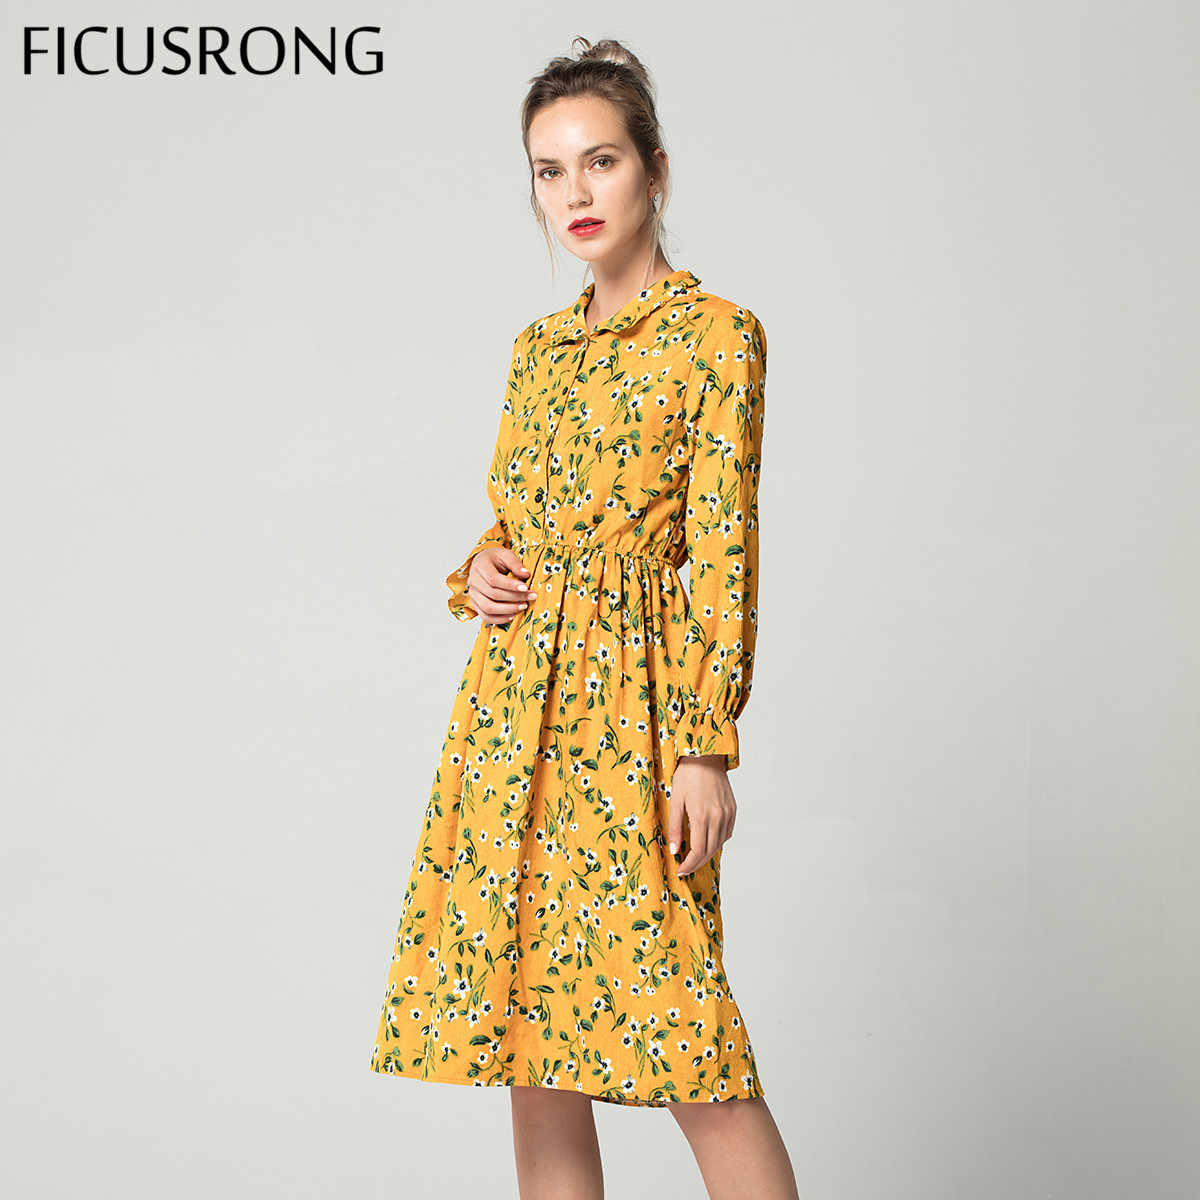 Corduroy High Elastic Waist Vintage Dress A-line Style Women Full Sleeve Flower Plaid Print Dresses Slim Feminino FICUSRONG